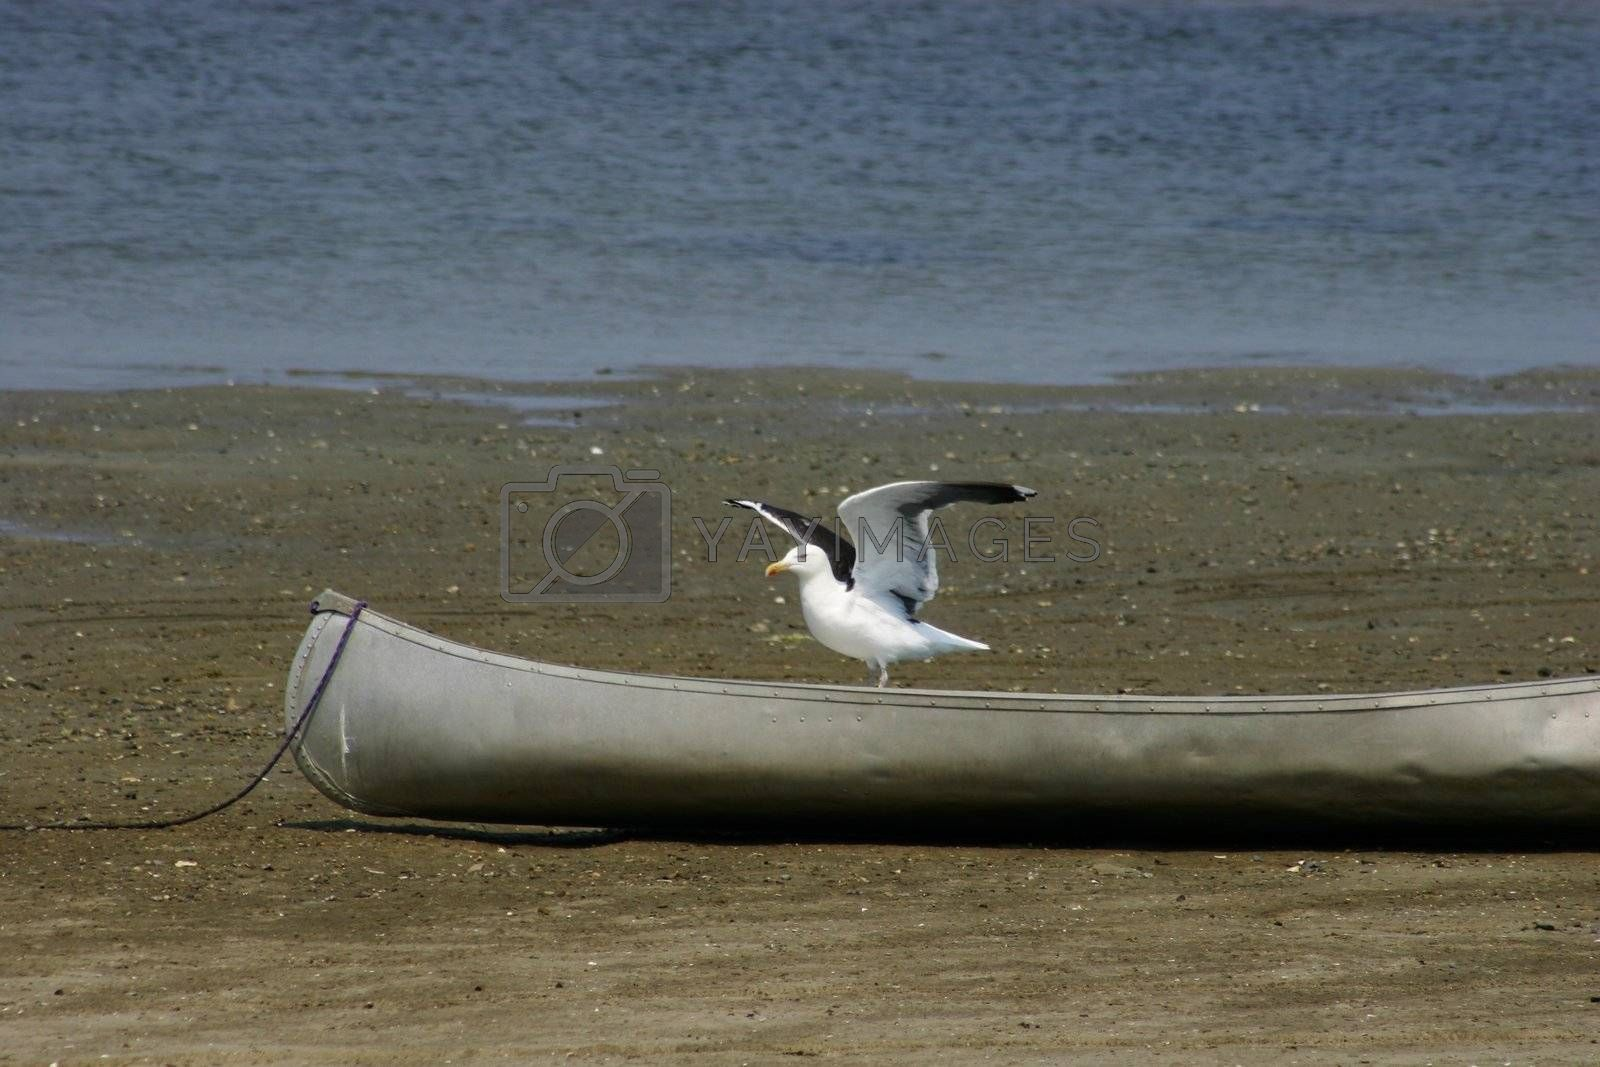 Seagull ready to take flight from a grounded canoe